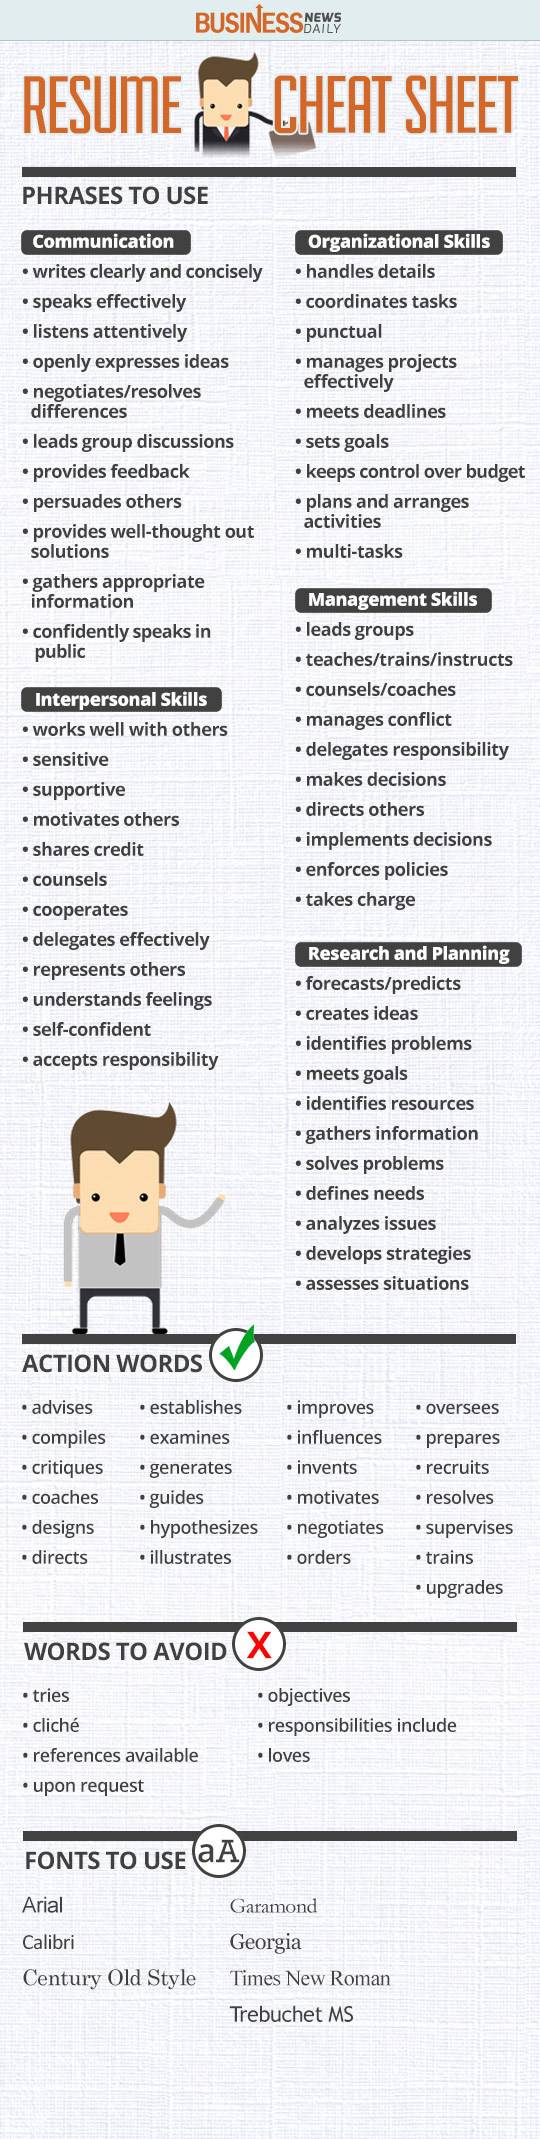 your resume cheat sheet writing guide businessnewsdaily business skills for healthcare Resume Business Skills For Resume